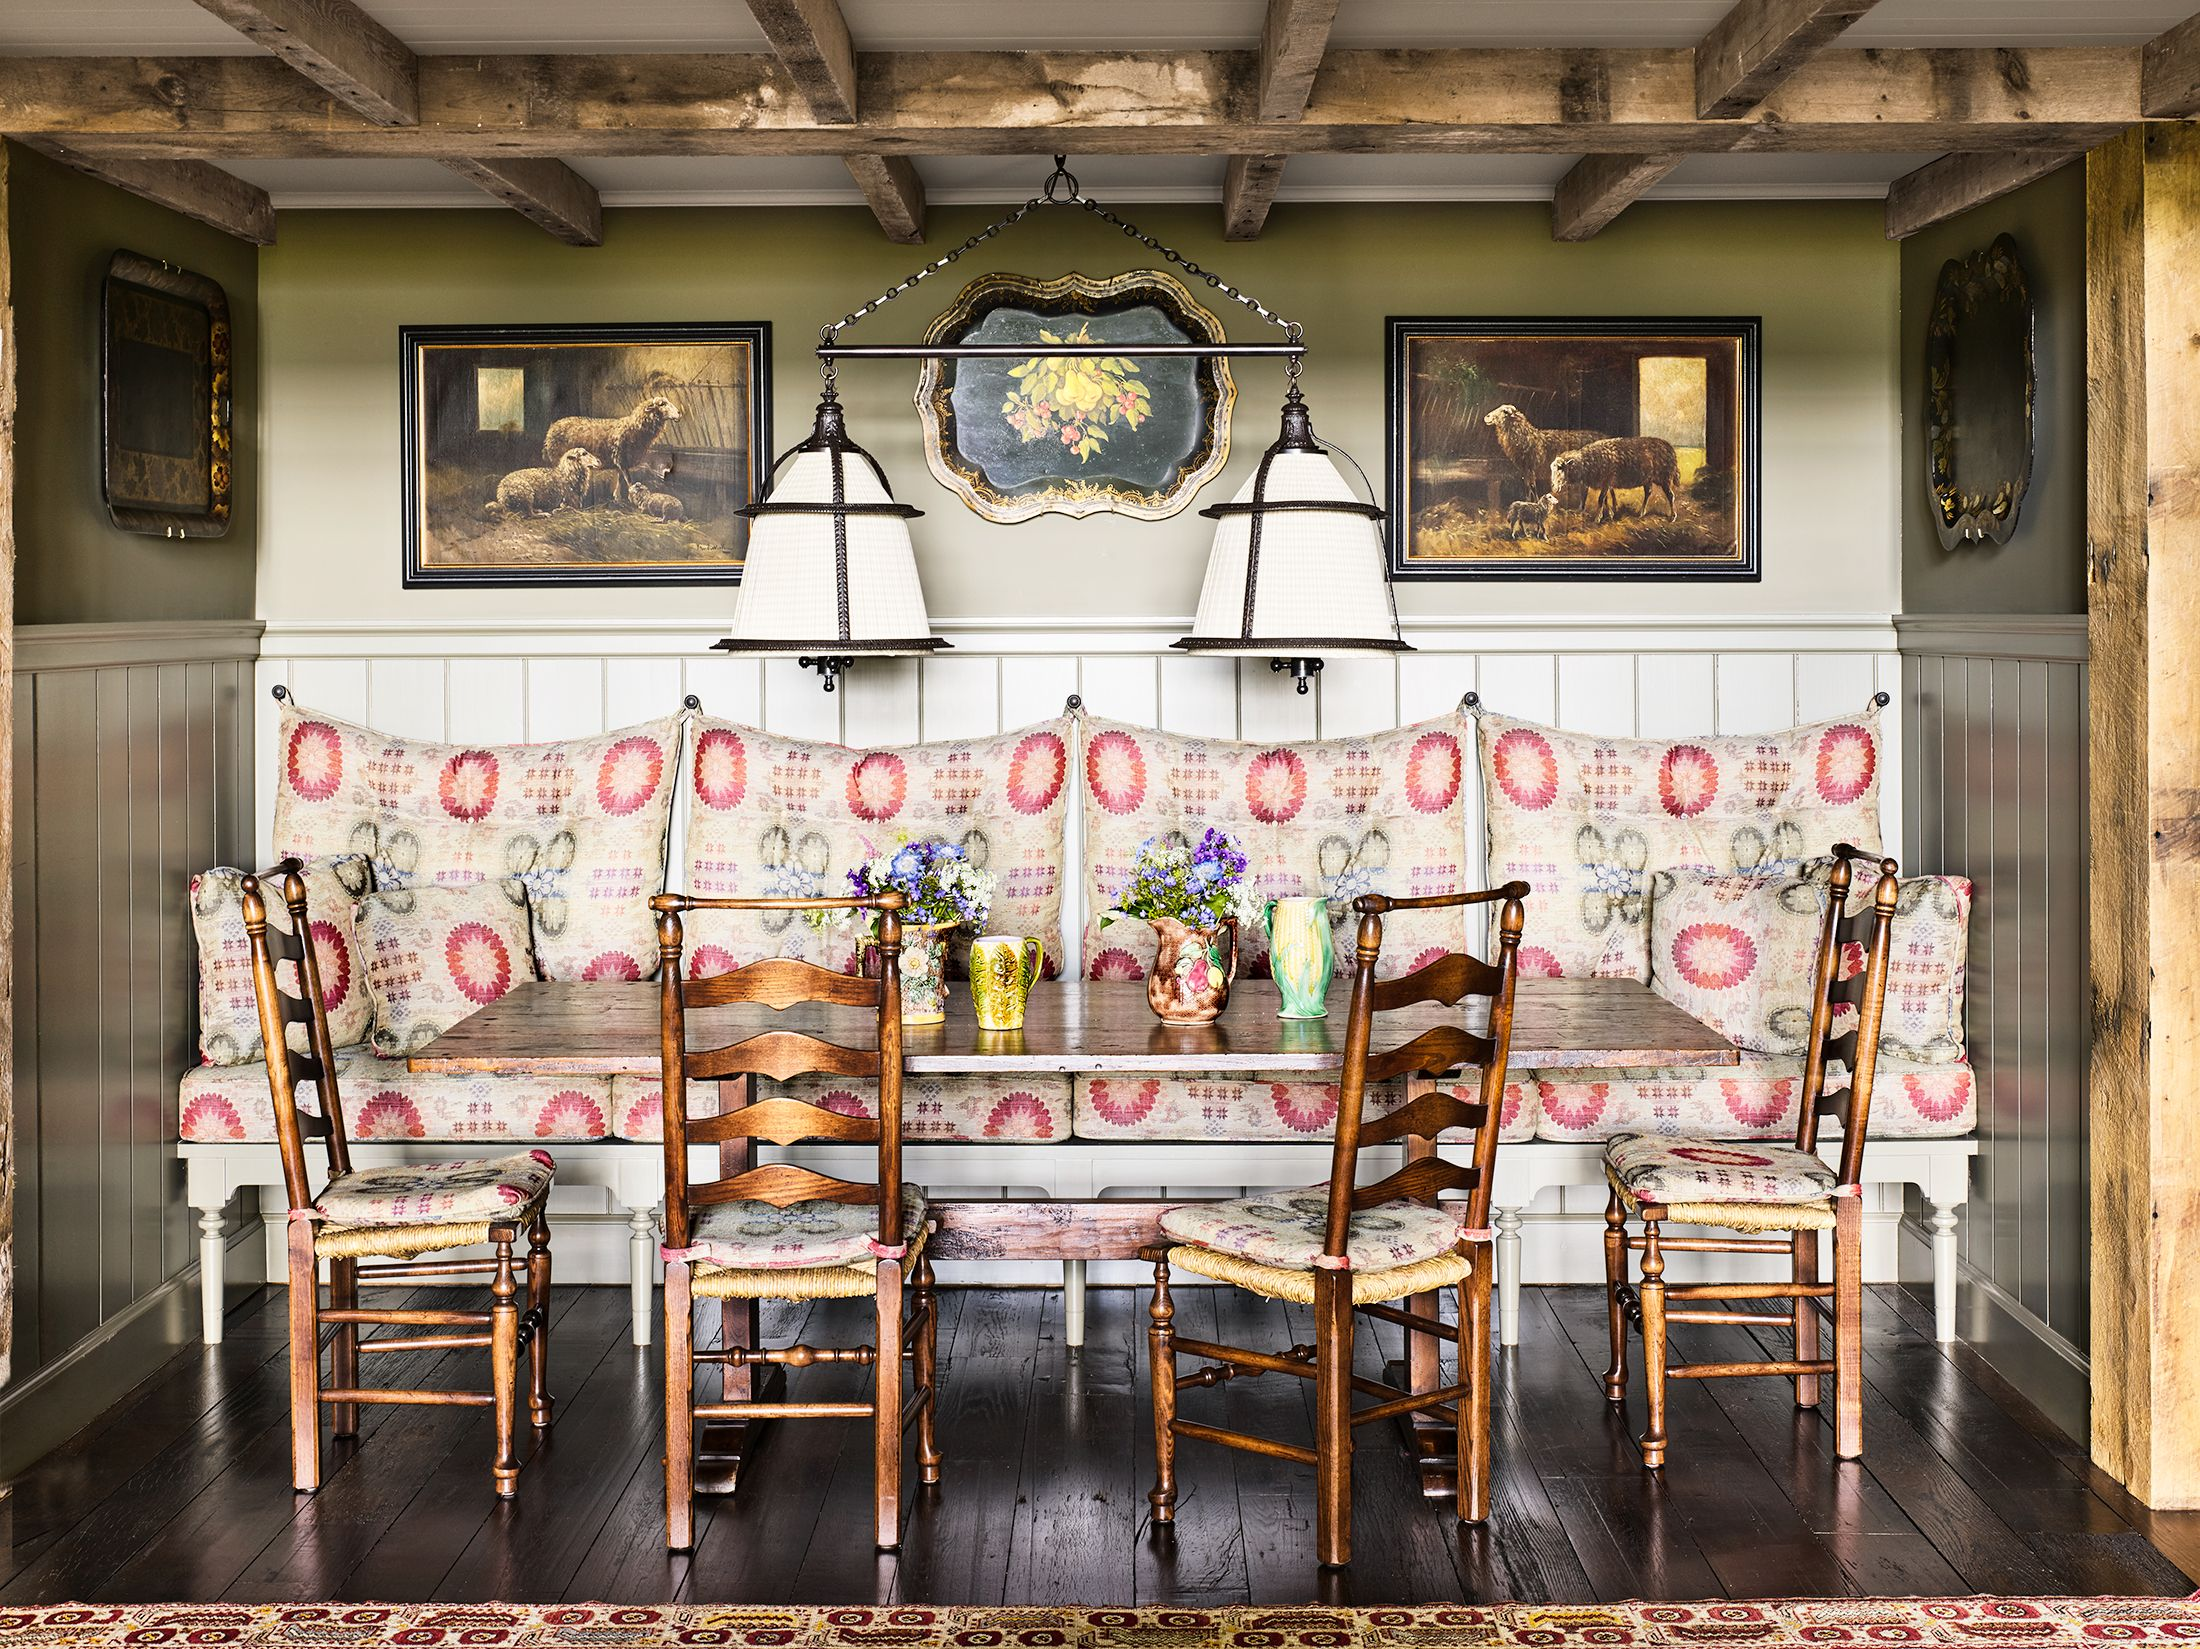 15 Banquette Seating Ideas to Dramatically Elevate Your Dining Nook